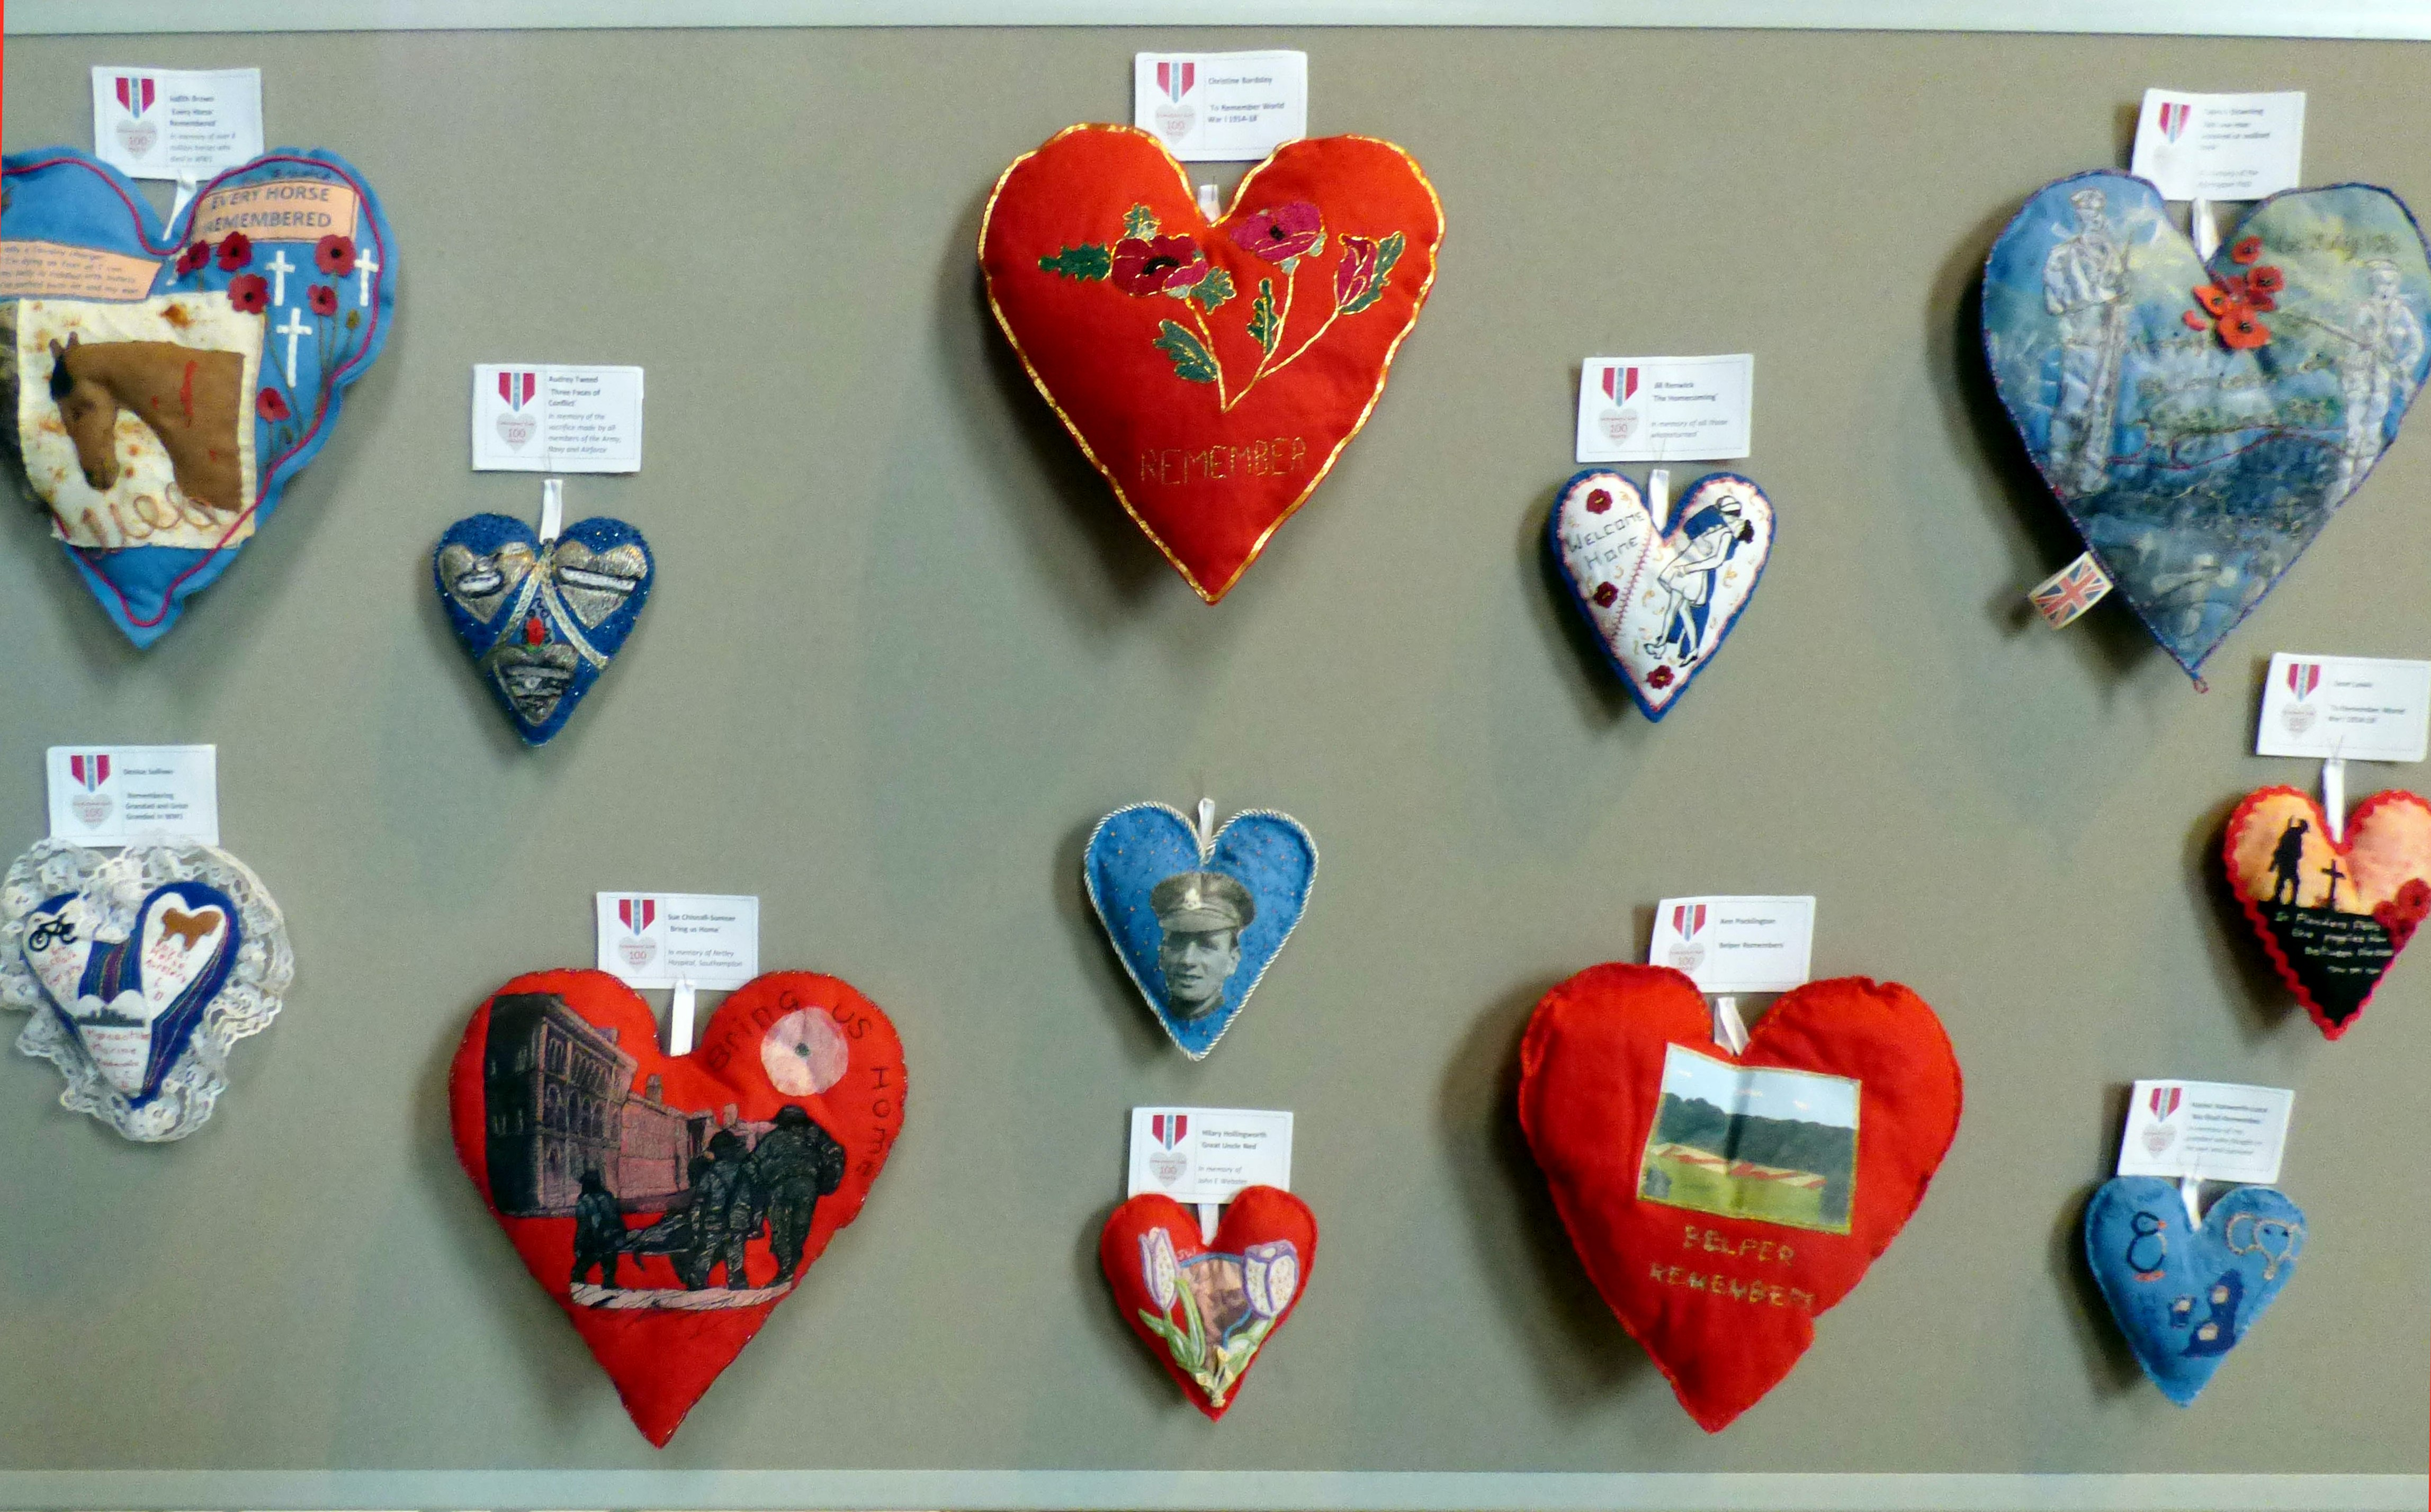 100 Hearts exhibition Liverpool Cathedral, 2018